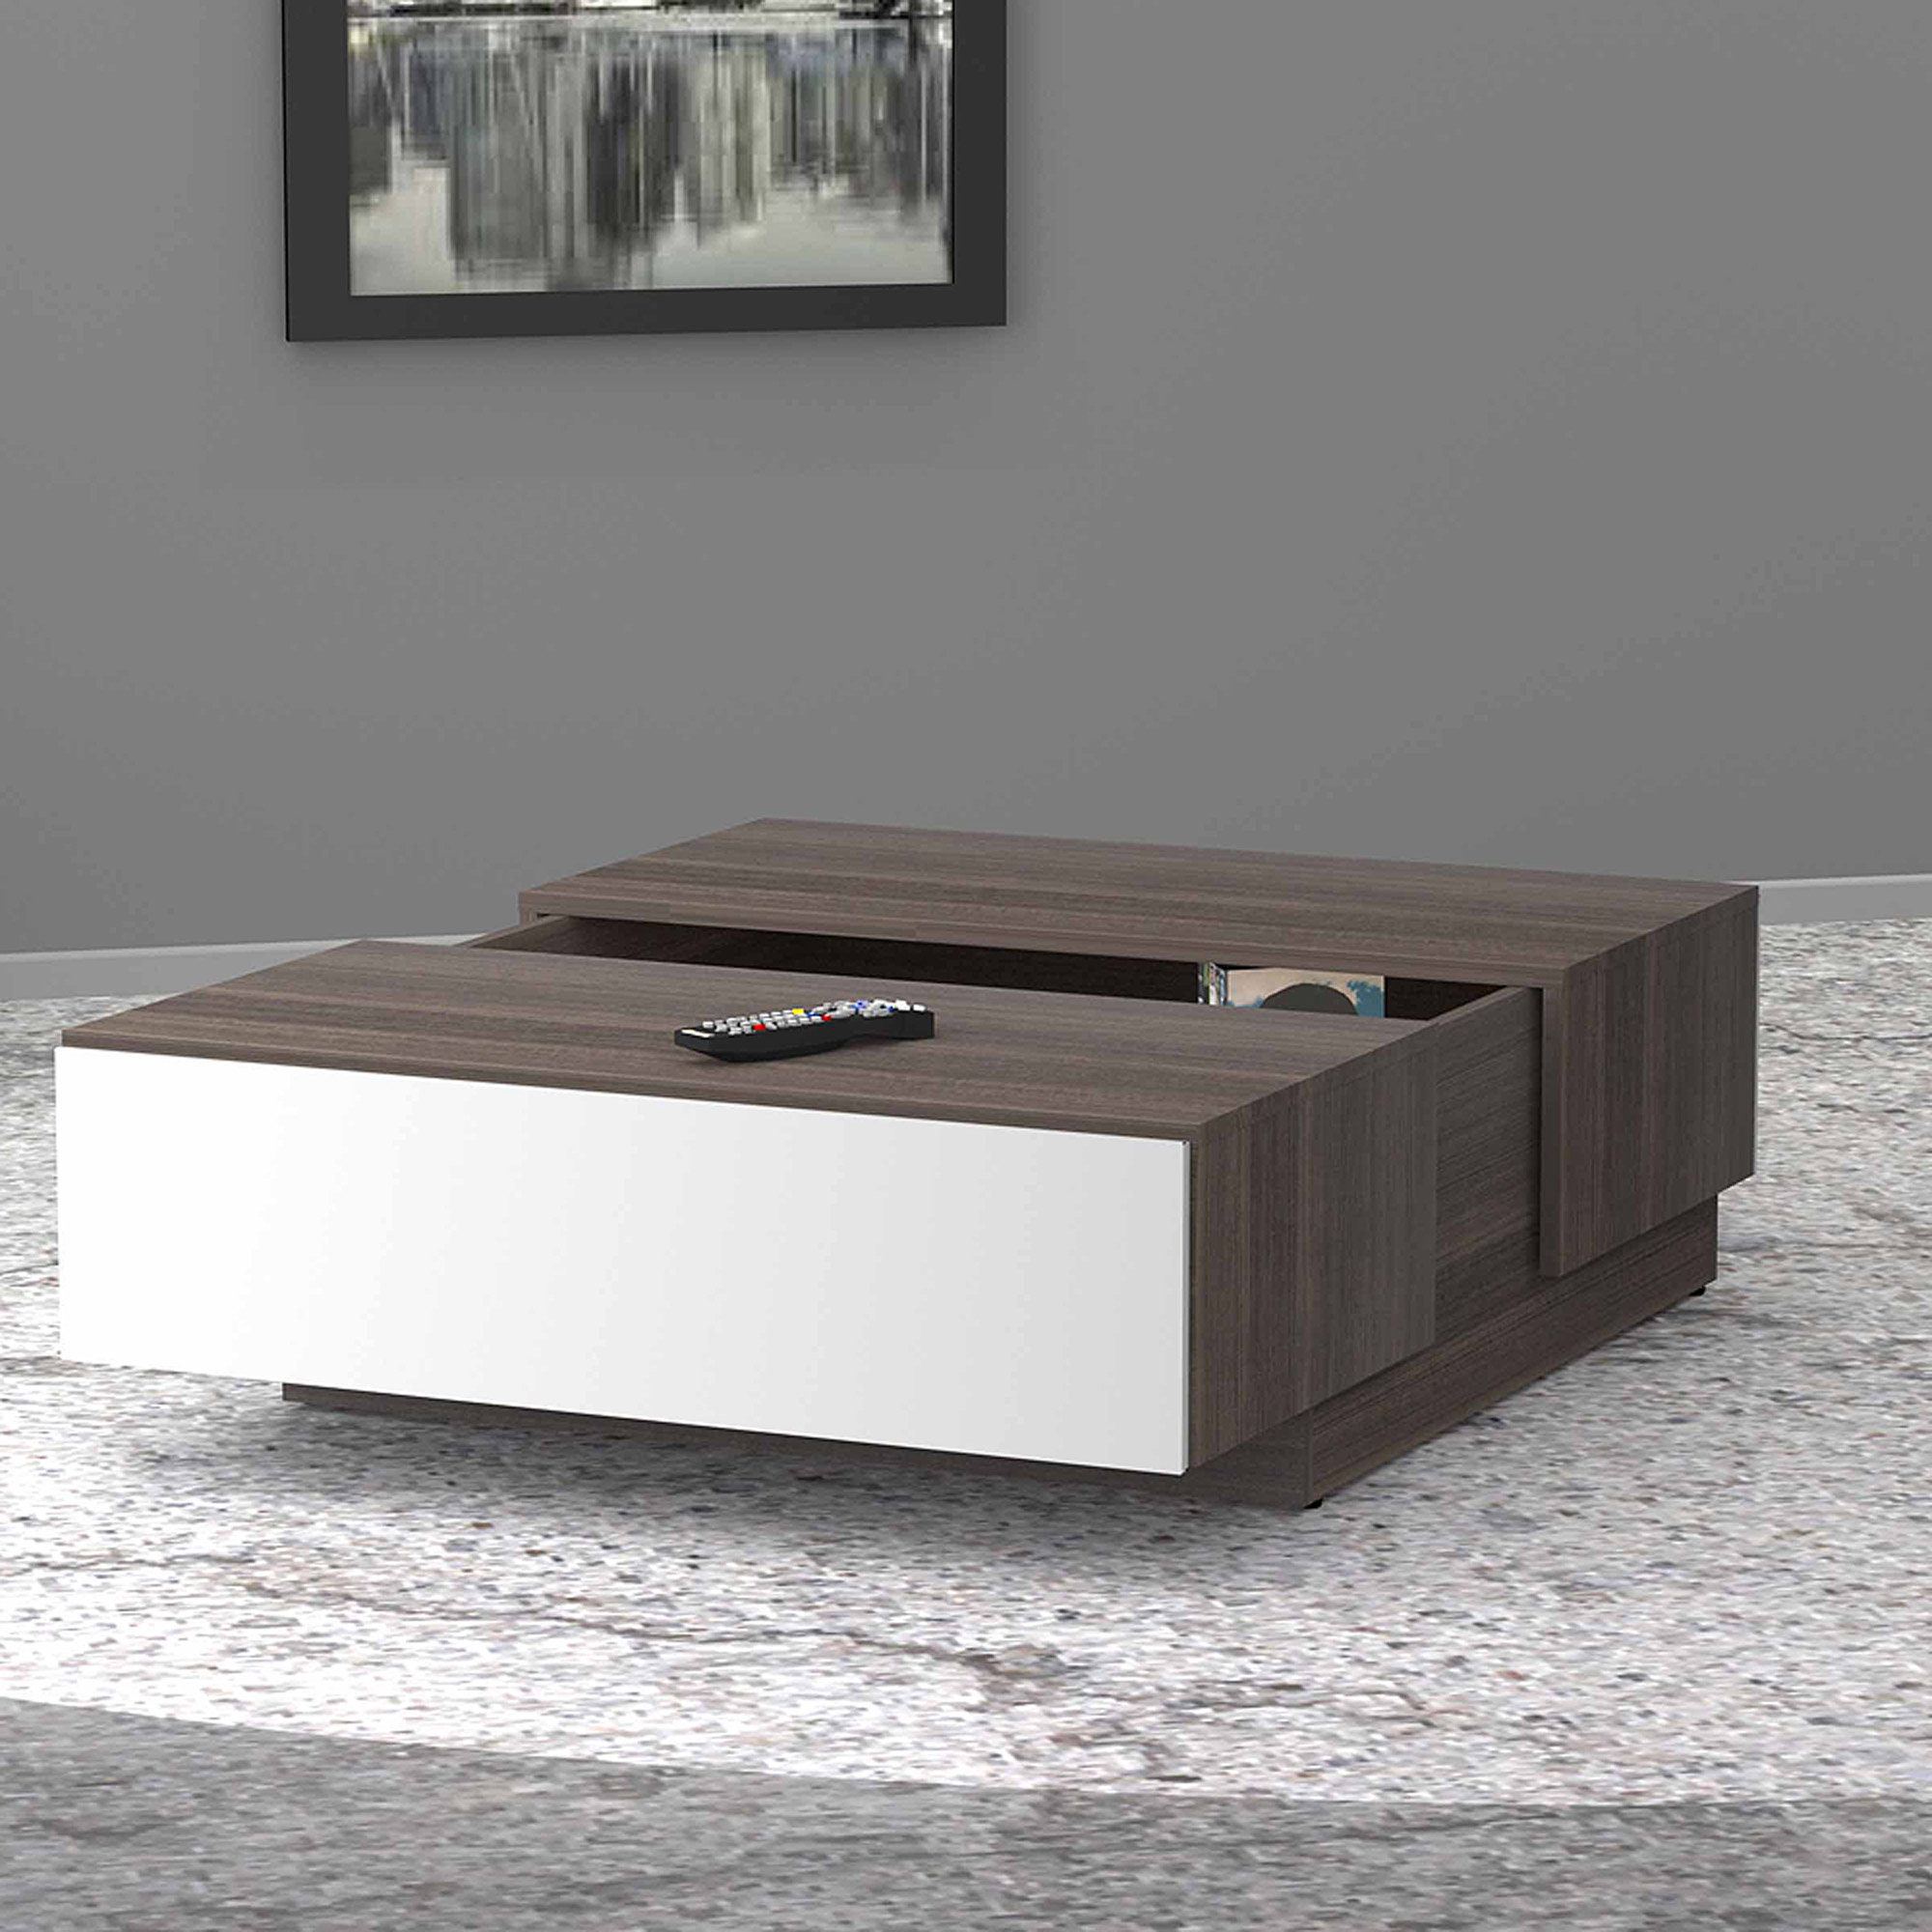 Nexera Allure Coffee Table with Hidden Storage, White/Ebony